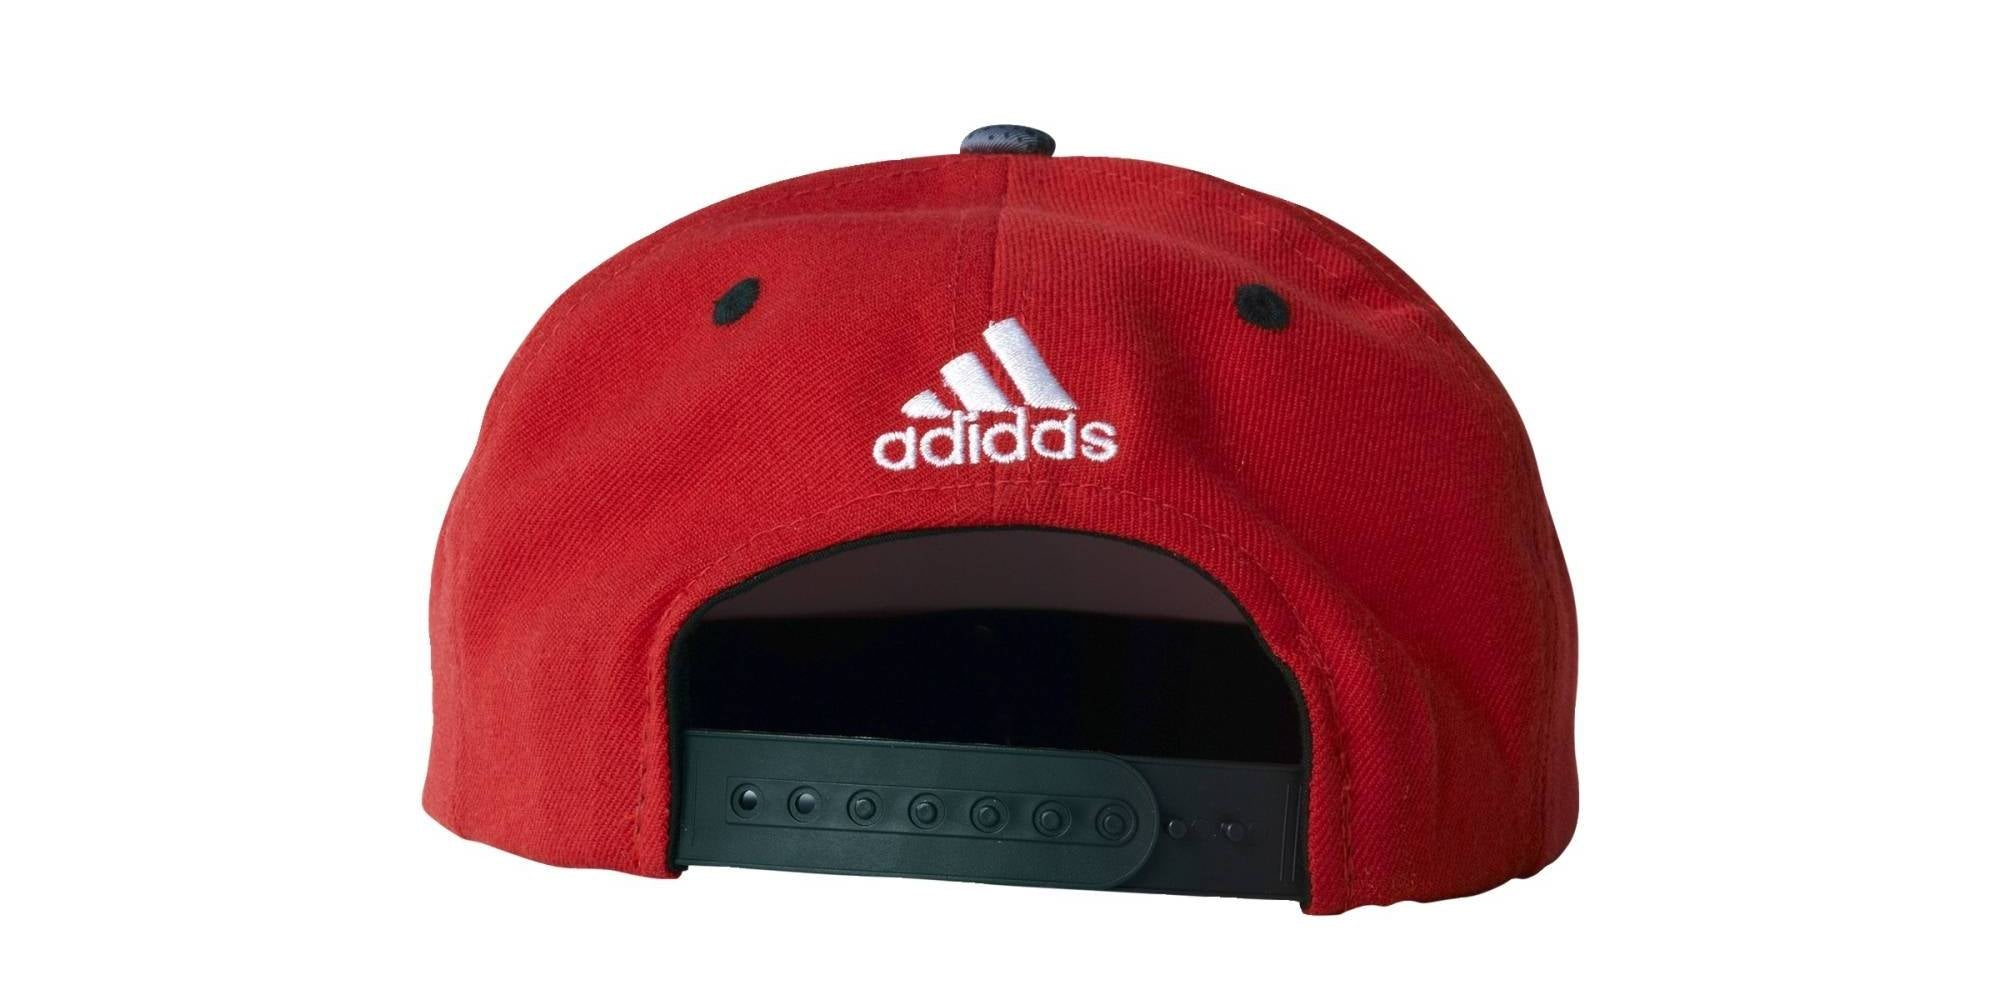 Adidas NBA Chicago Bulls Flat Peak Cap - Red/Black/White